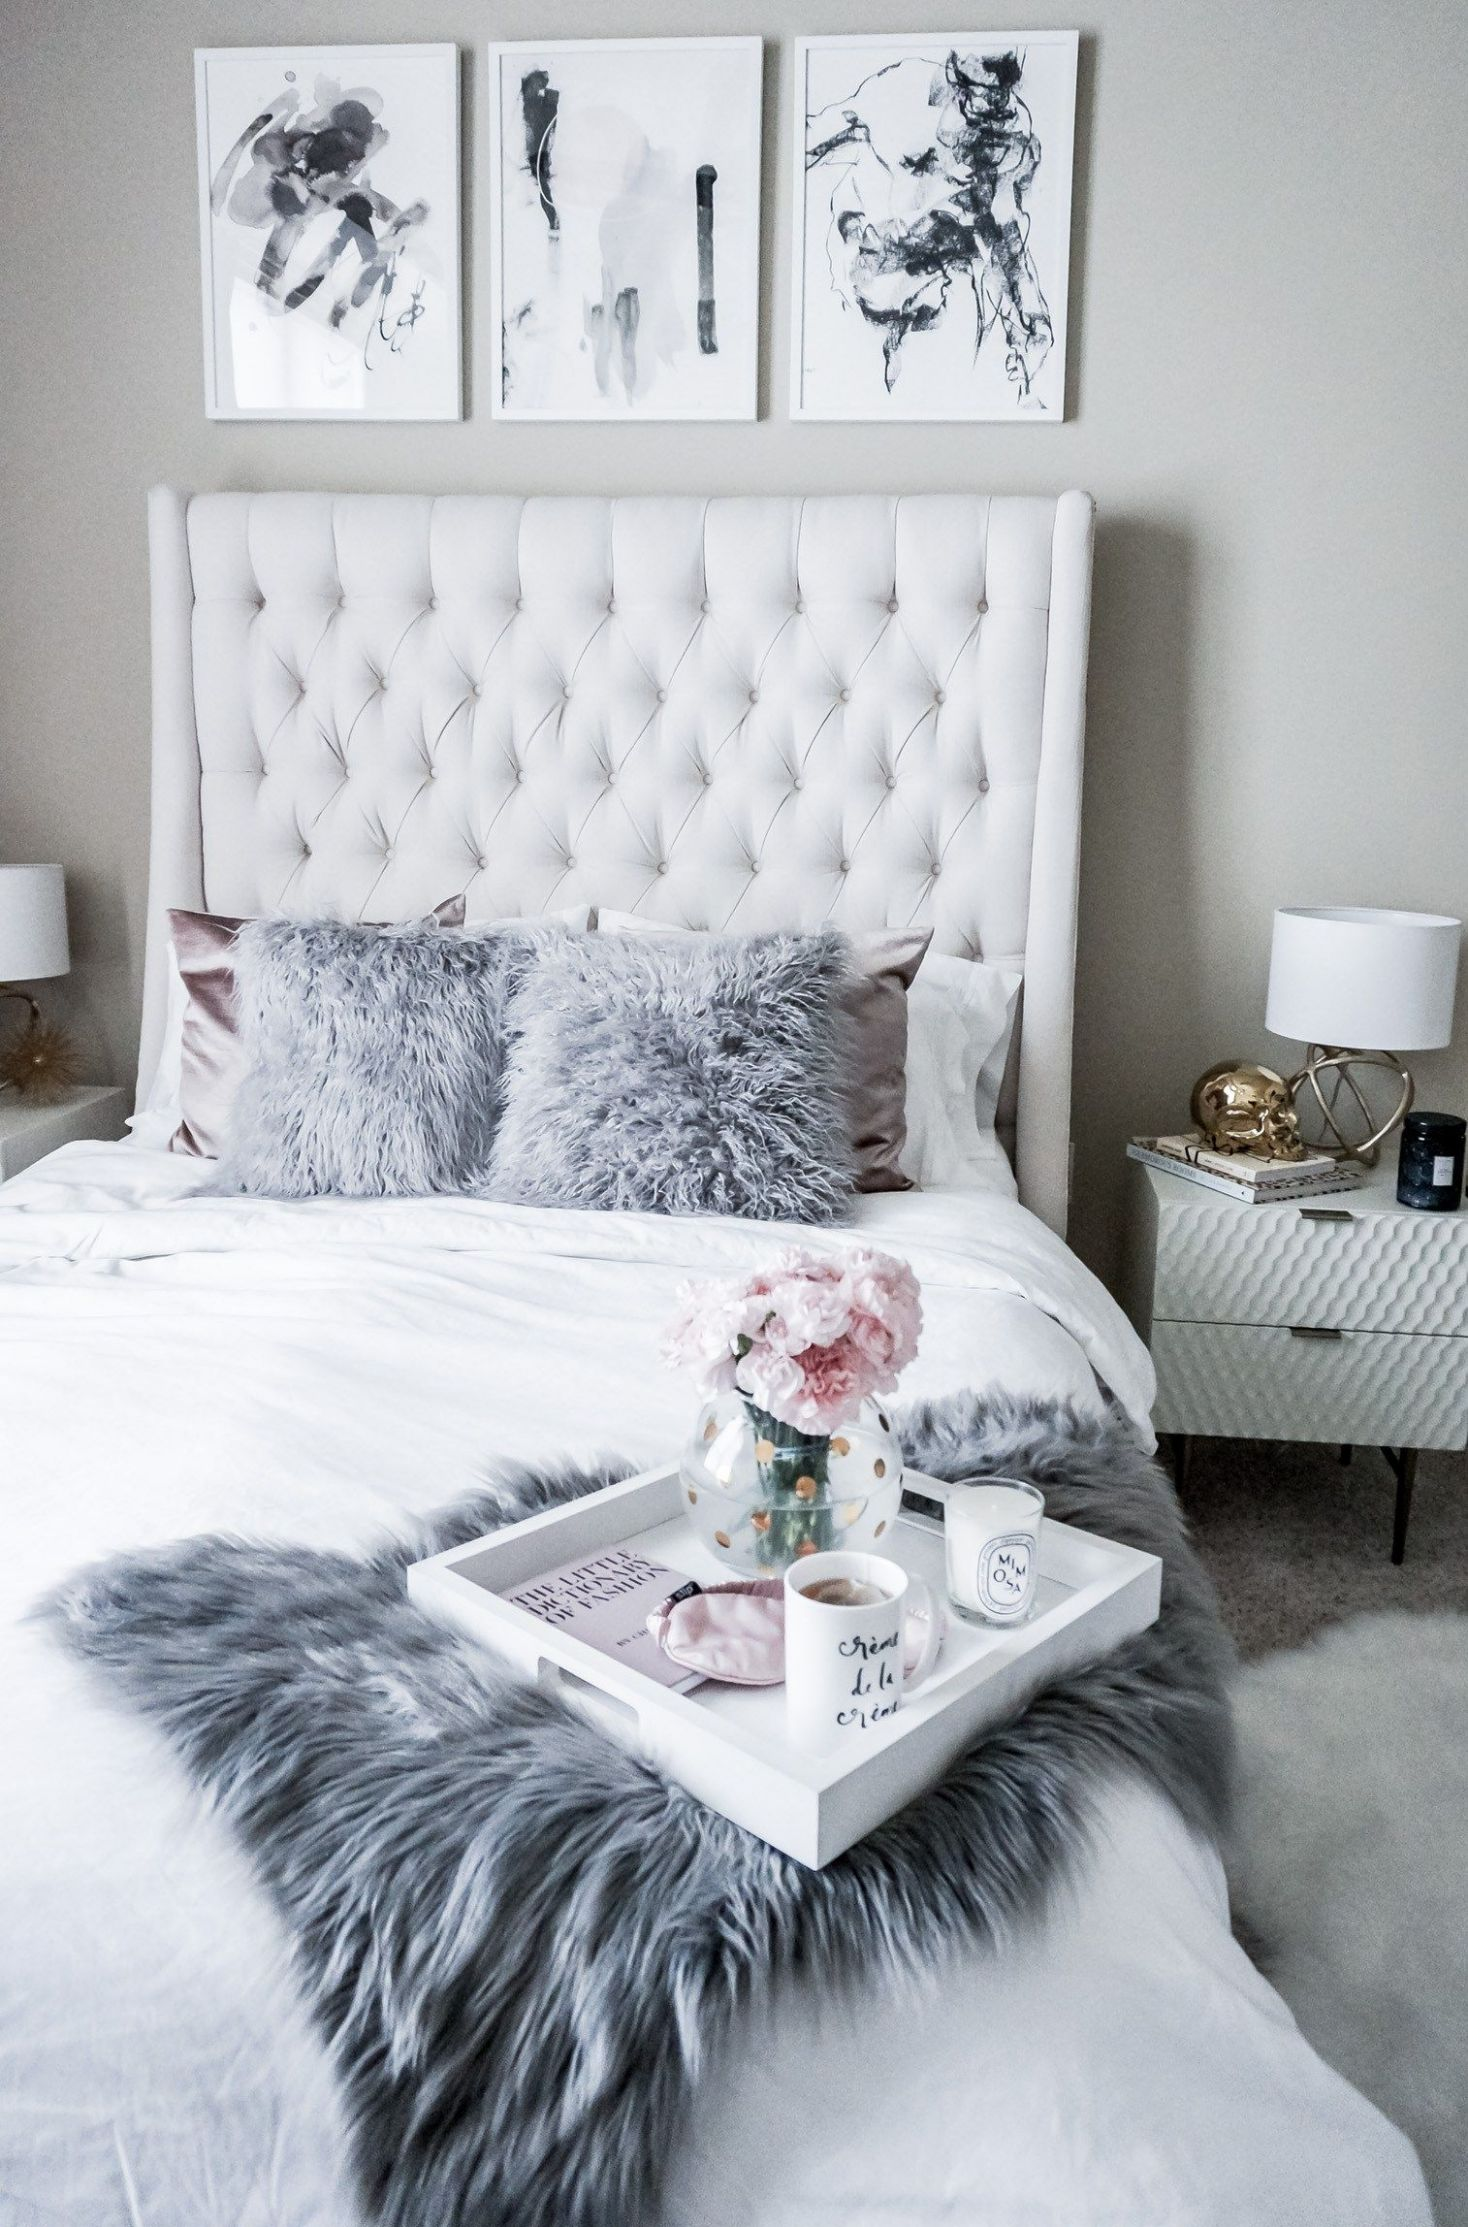 Minted (With images) | White bedroom design, Home decor bedroom - diy home decor bedroom